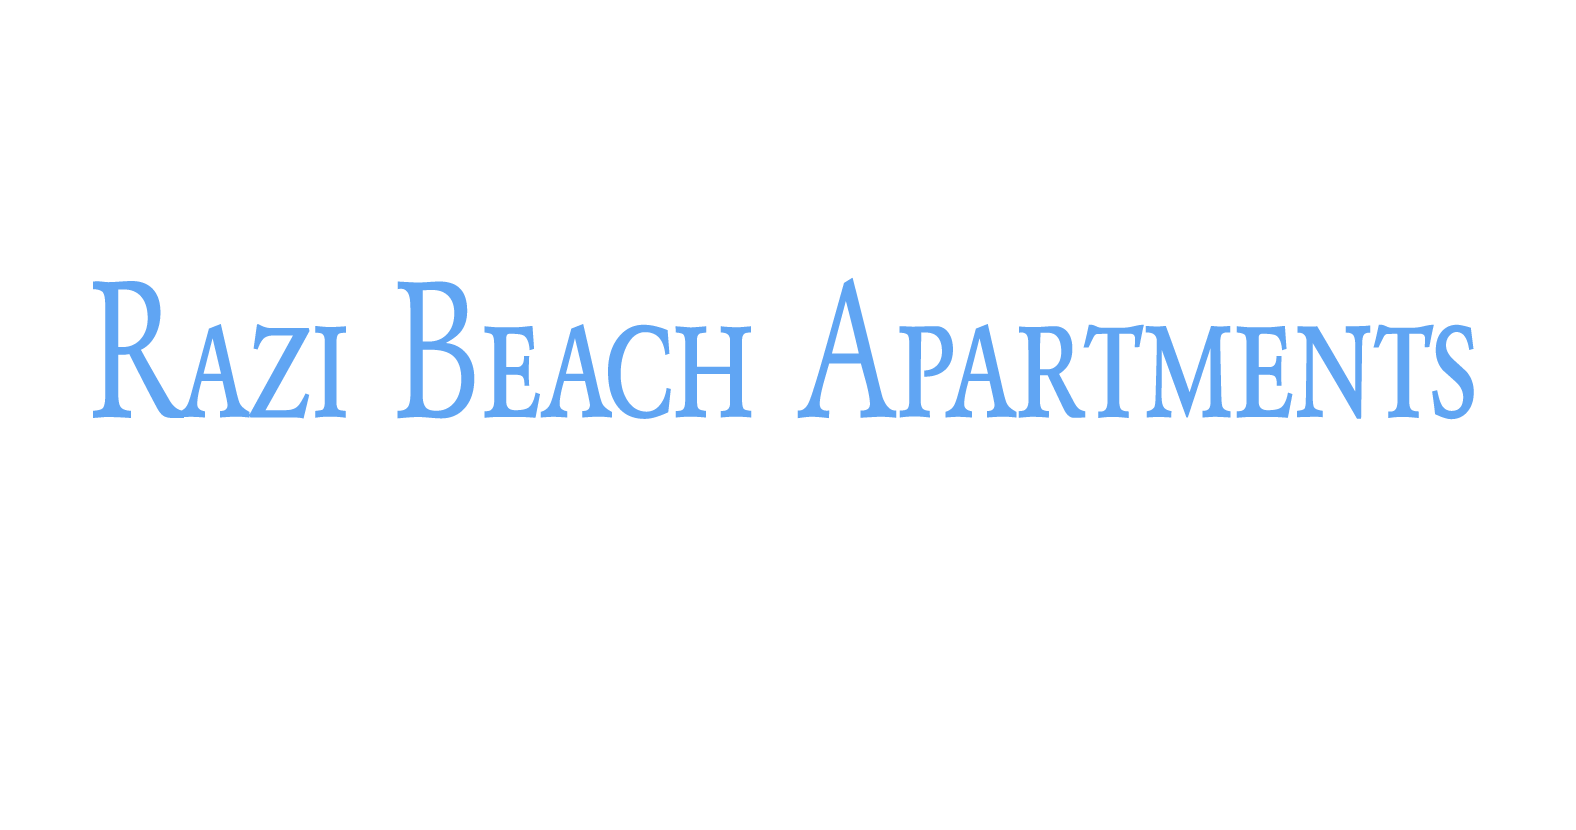 Razi beach apartments  - Lefokastro - Pelion Greece